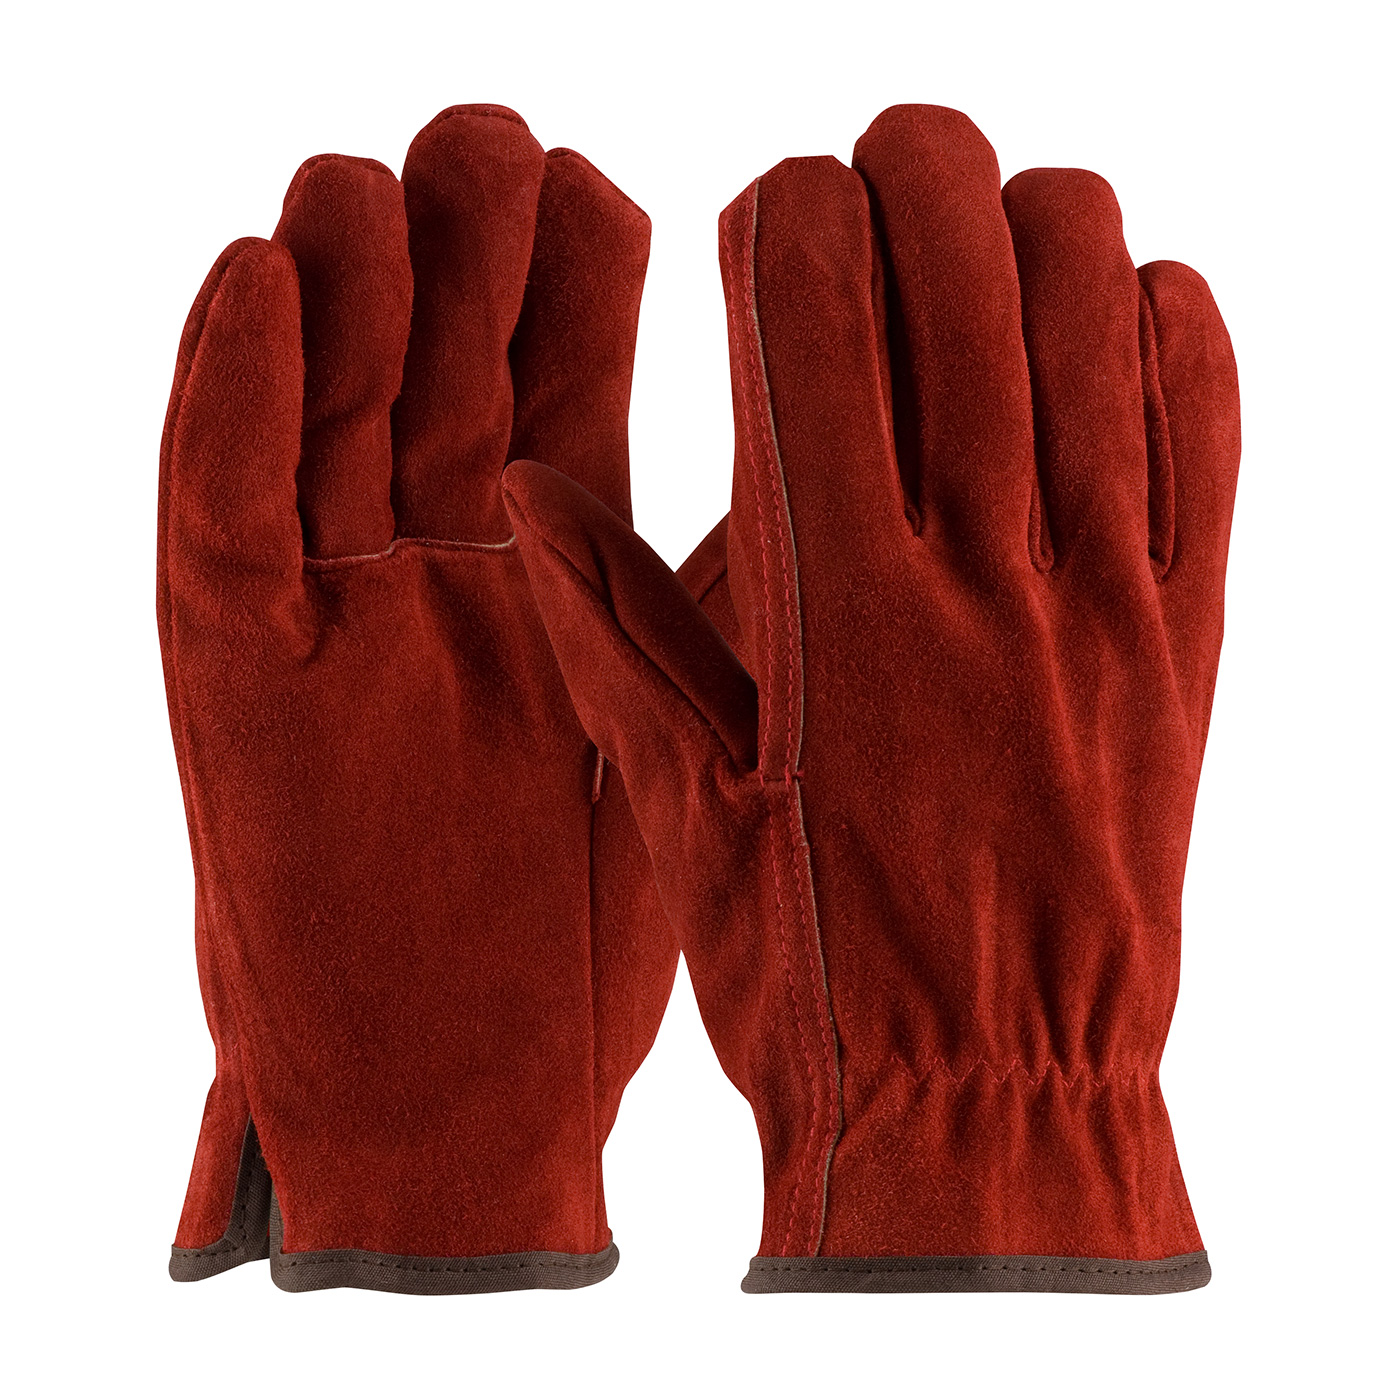 Insulated Leather Drivers Gloves